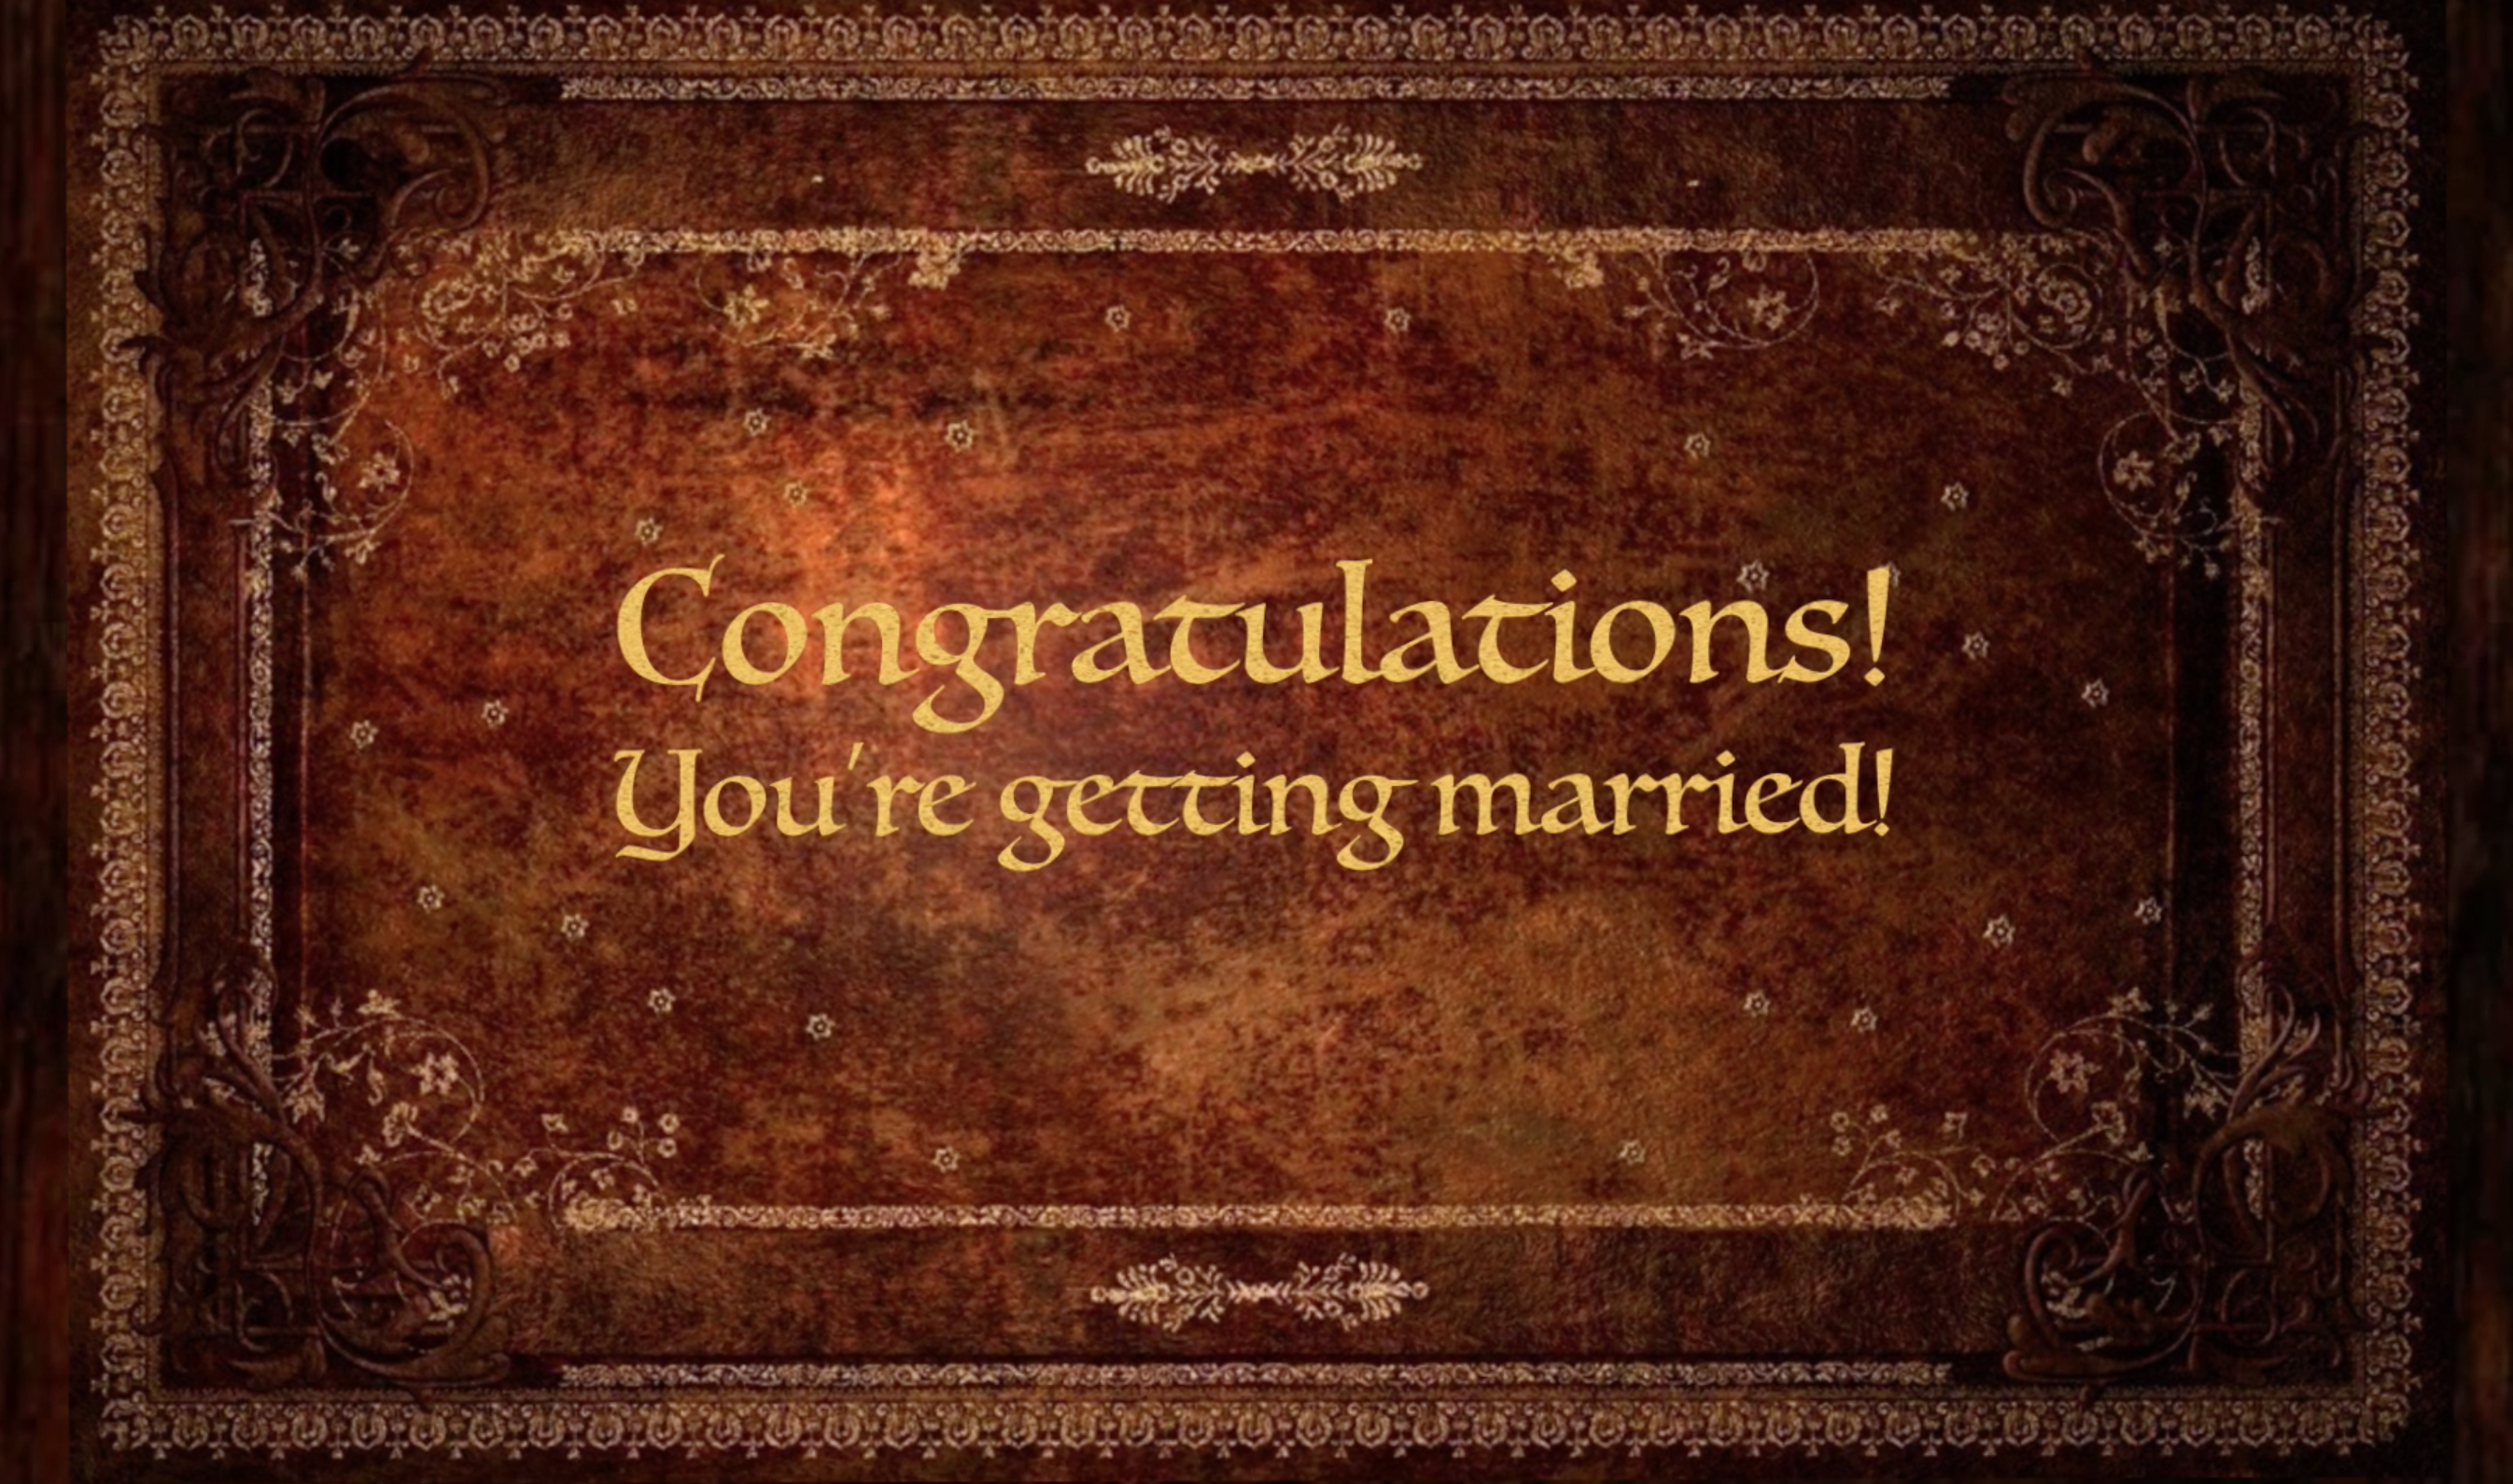 Congratulations! You're getting married!